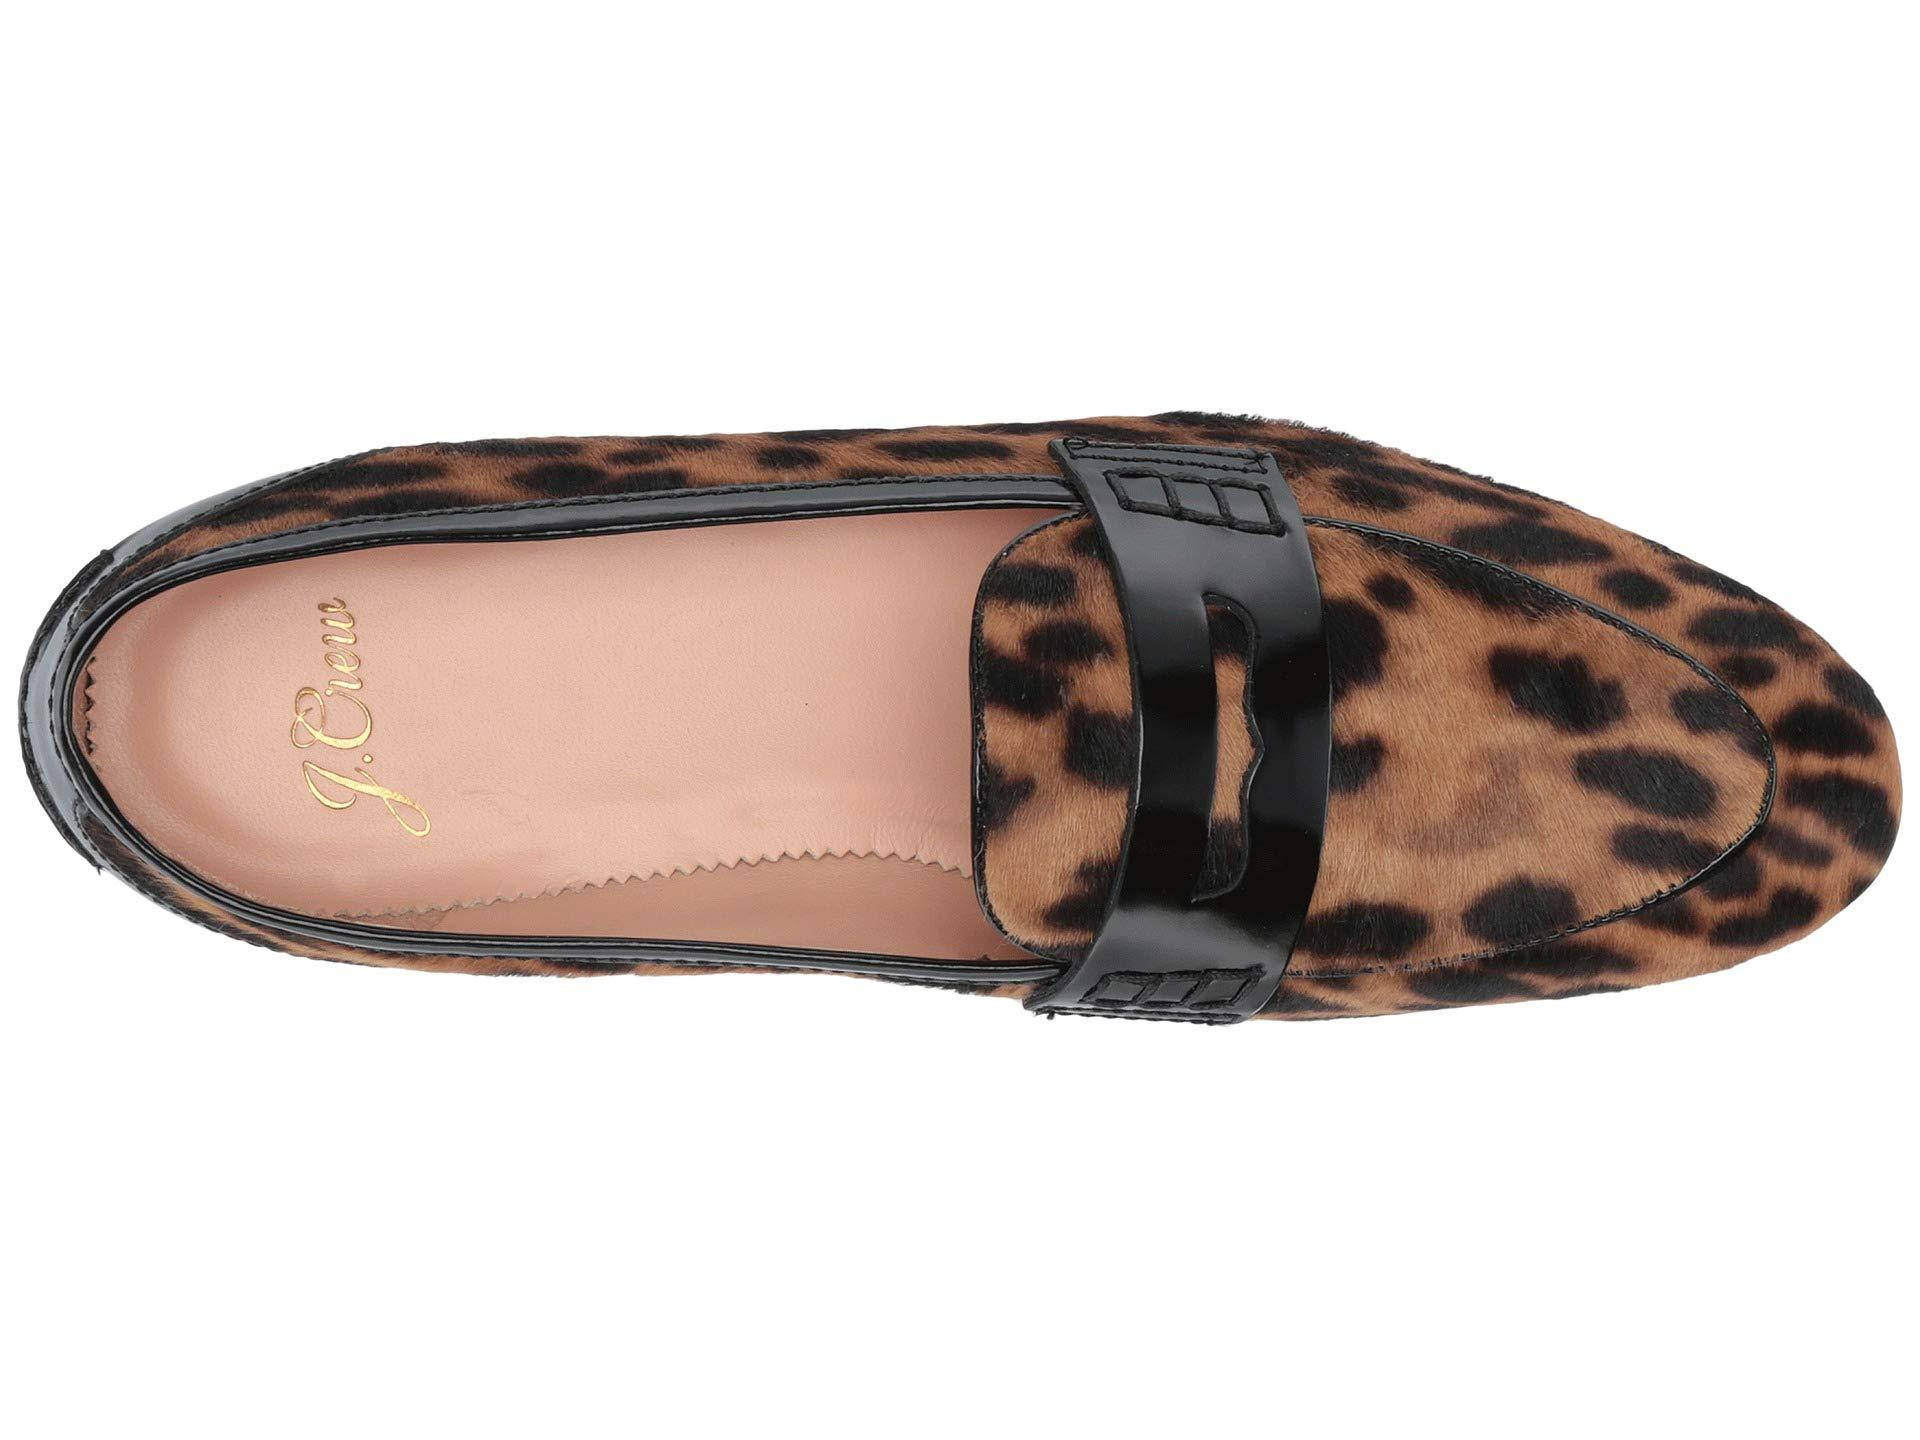 416ffb2cba2 ... Haircalf Academy Penny Loafer (leopard Multi) Women s Shoes -. View  fullscreen